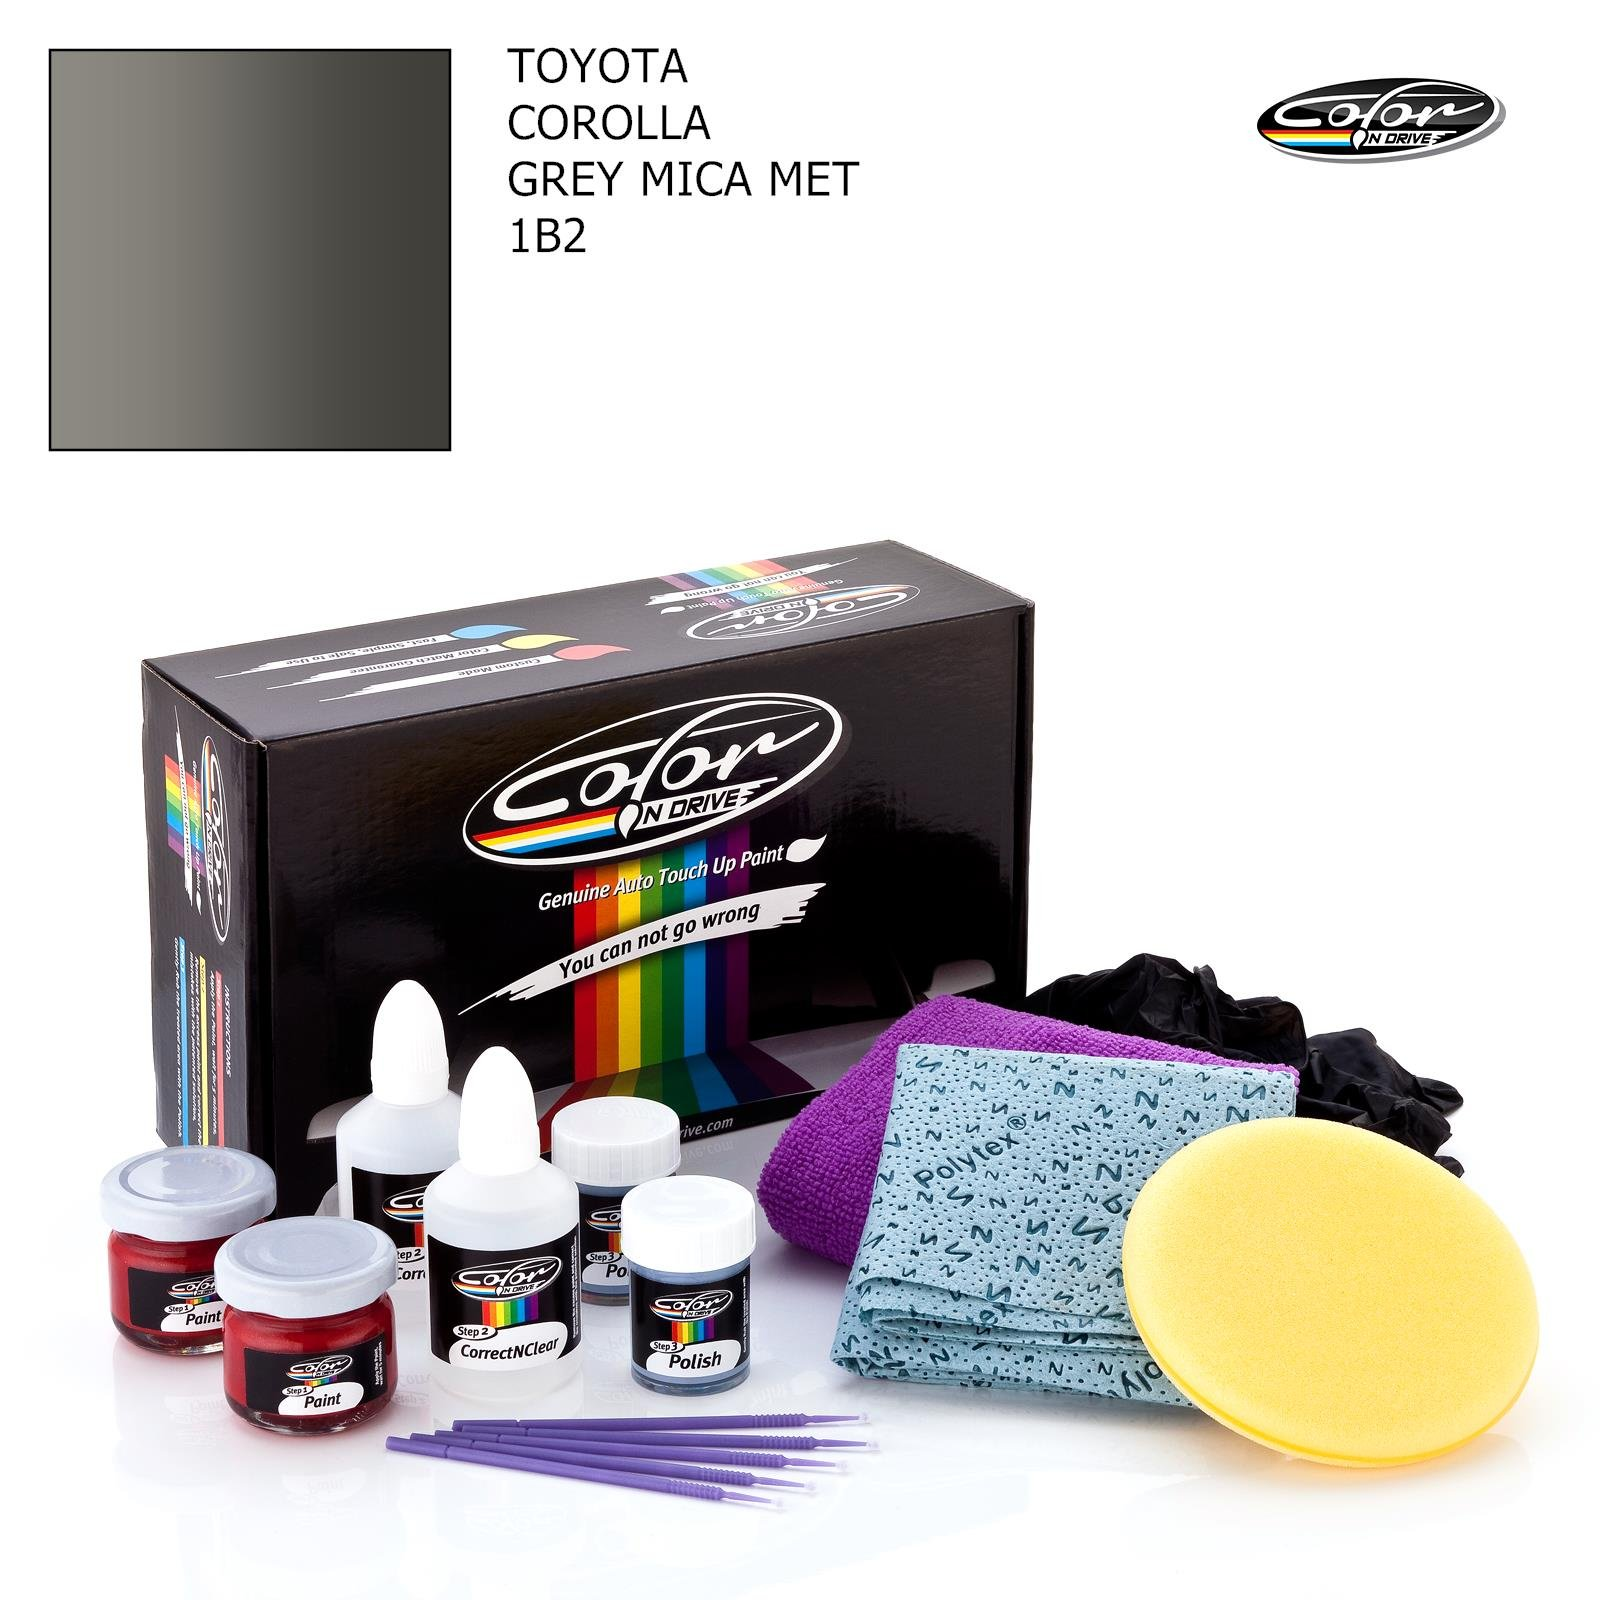 TOYOTA COROLLA / GREY MICA MET - 1B2 / COLOR N DRIVE TOUCH UP PAINT SYSTEM FOR PAINT CHIPS AND SCRATCHES / PRO PACK